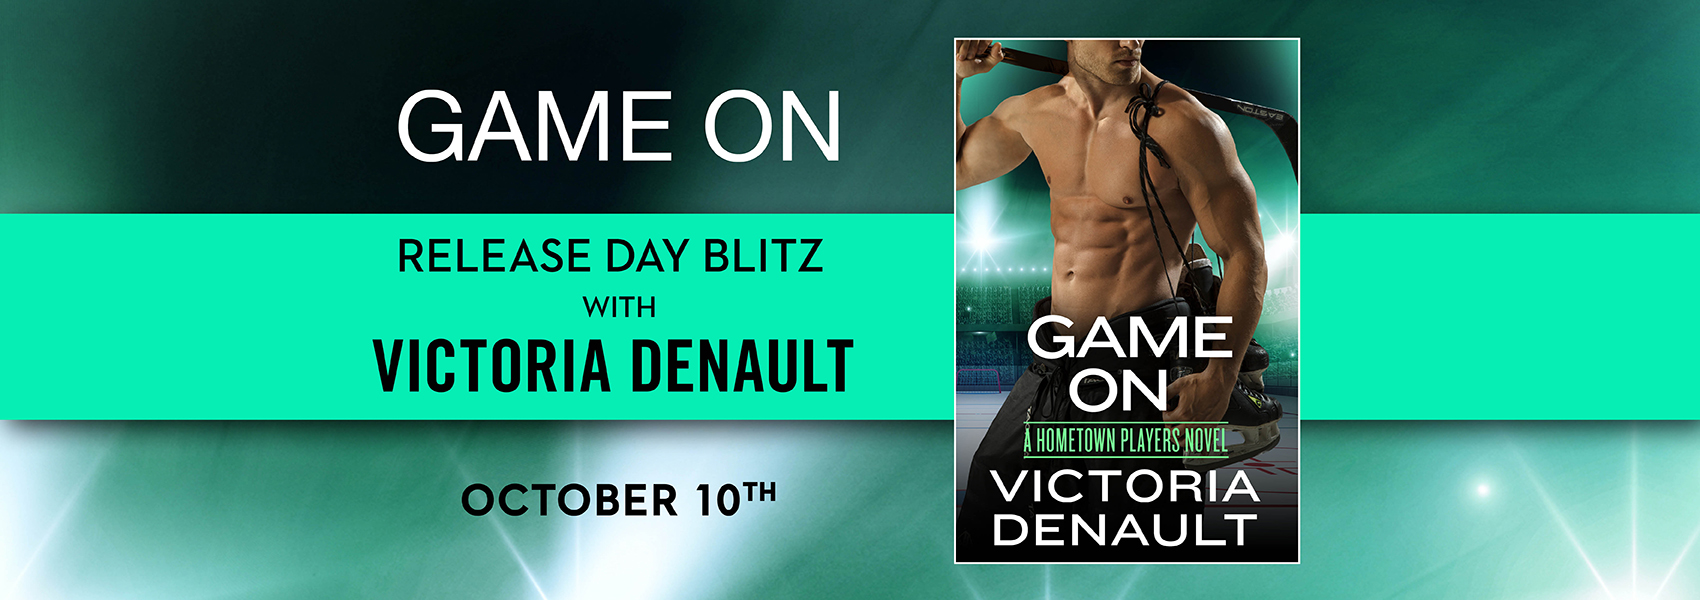 Enter to win 1 of 15 free ebook downloads of Game On